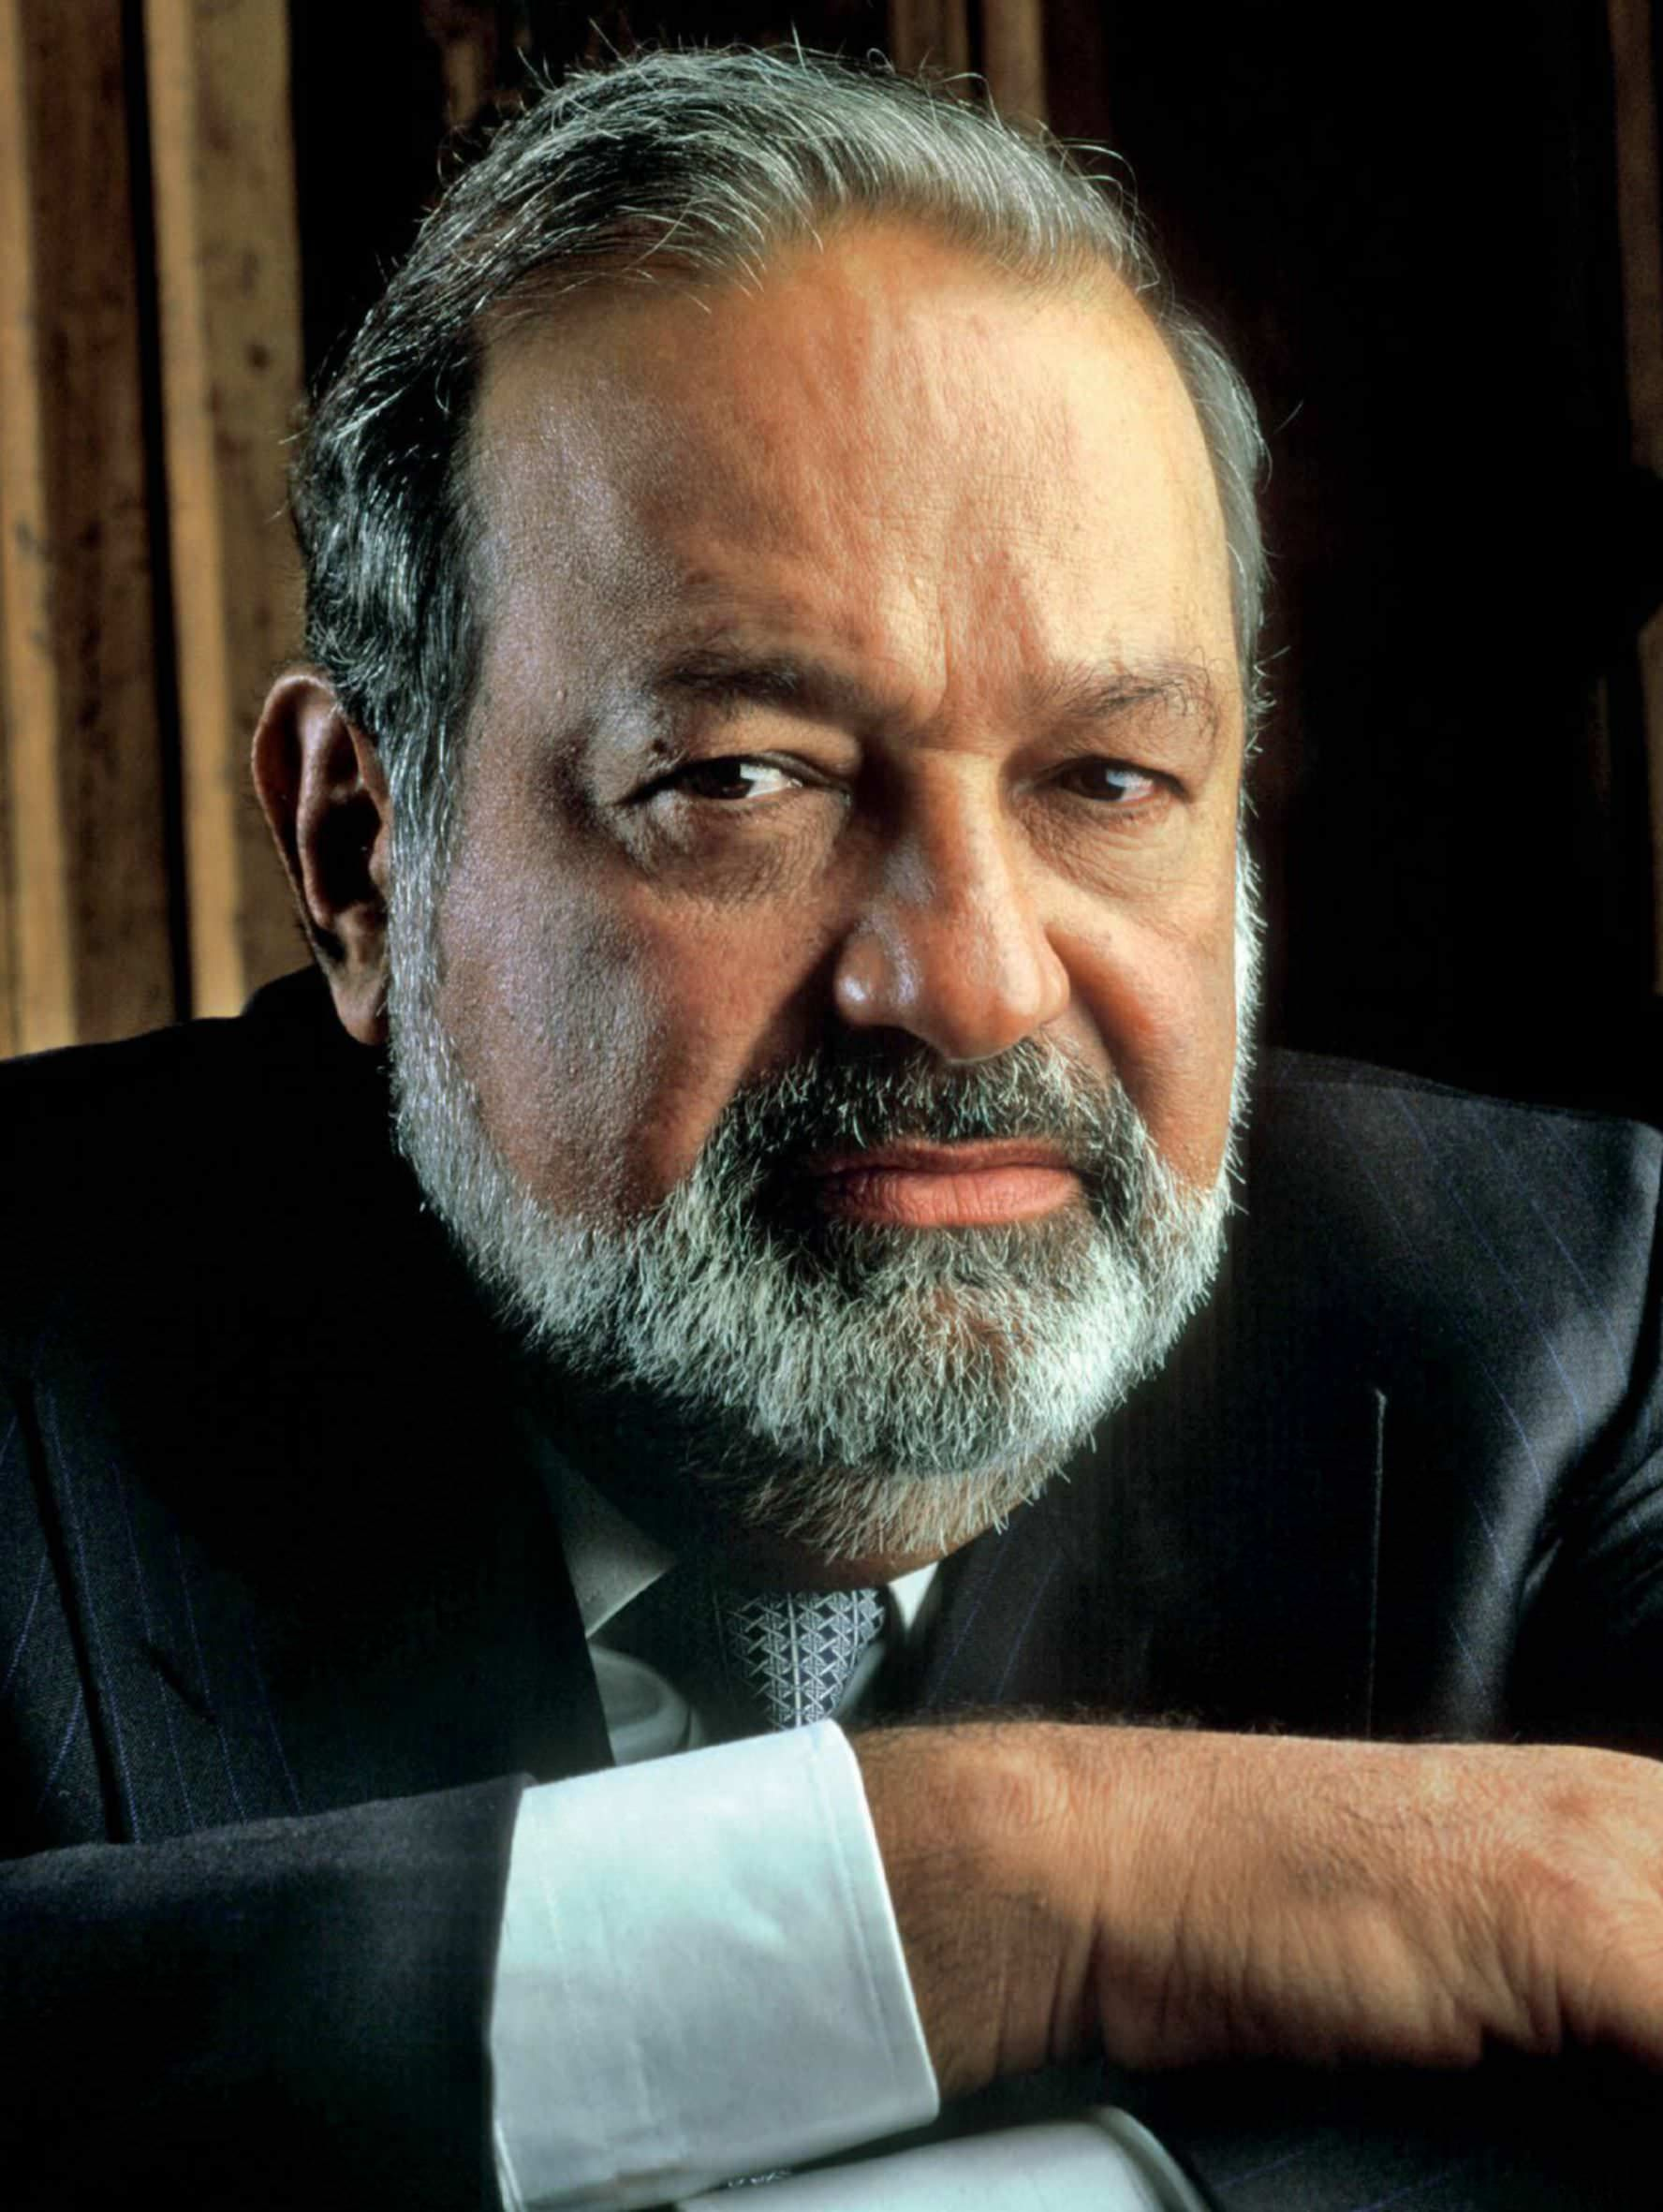 THE LIFE AND TIMES OF CARLOS SLIM